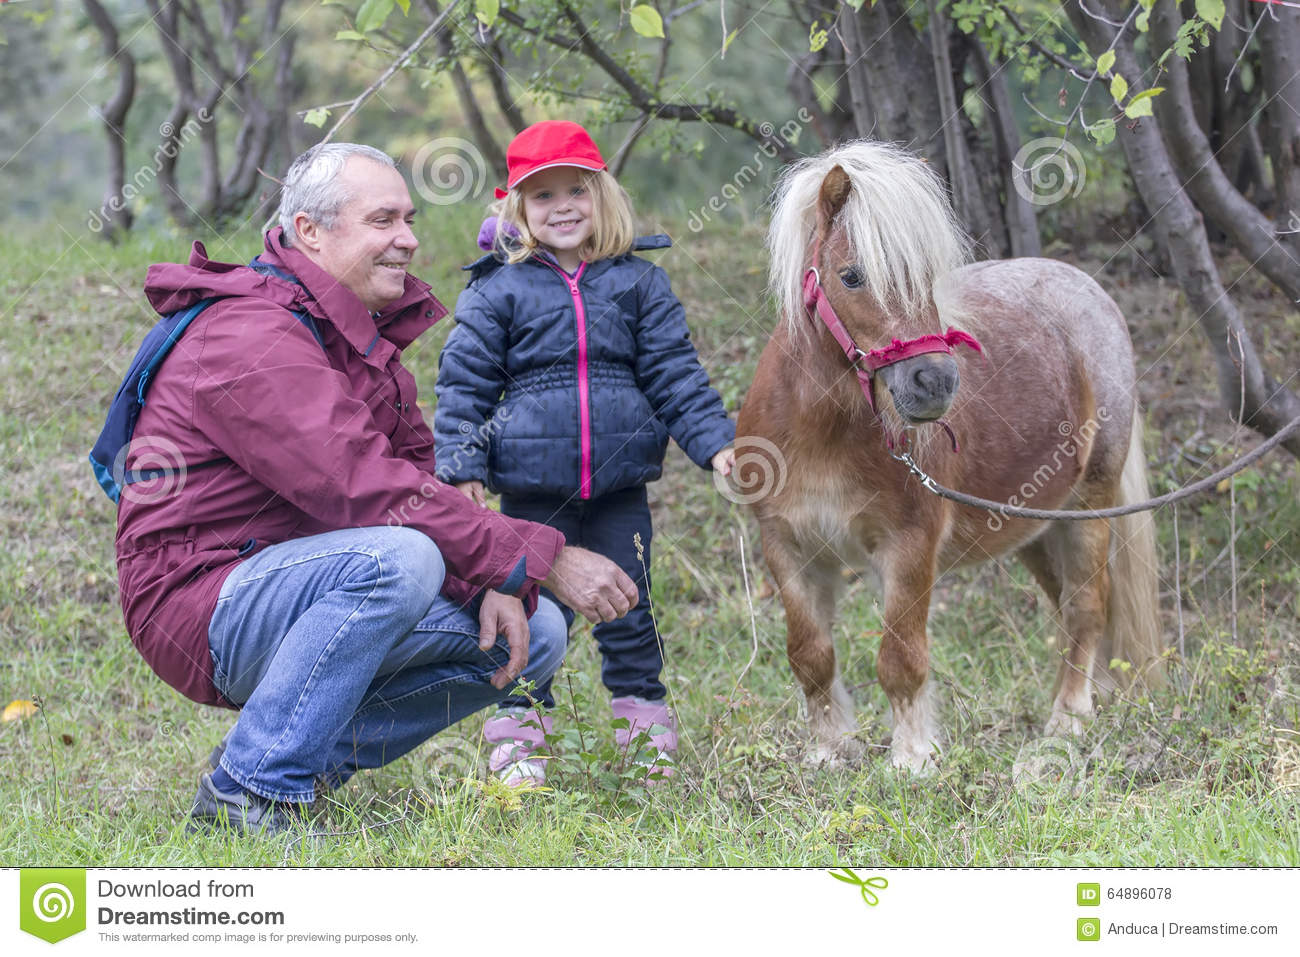 Child, grandfather and pony